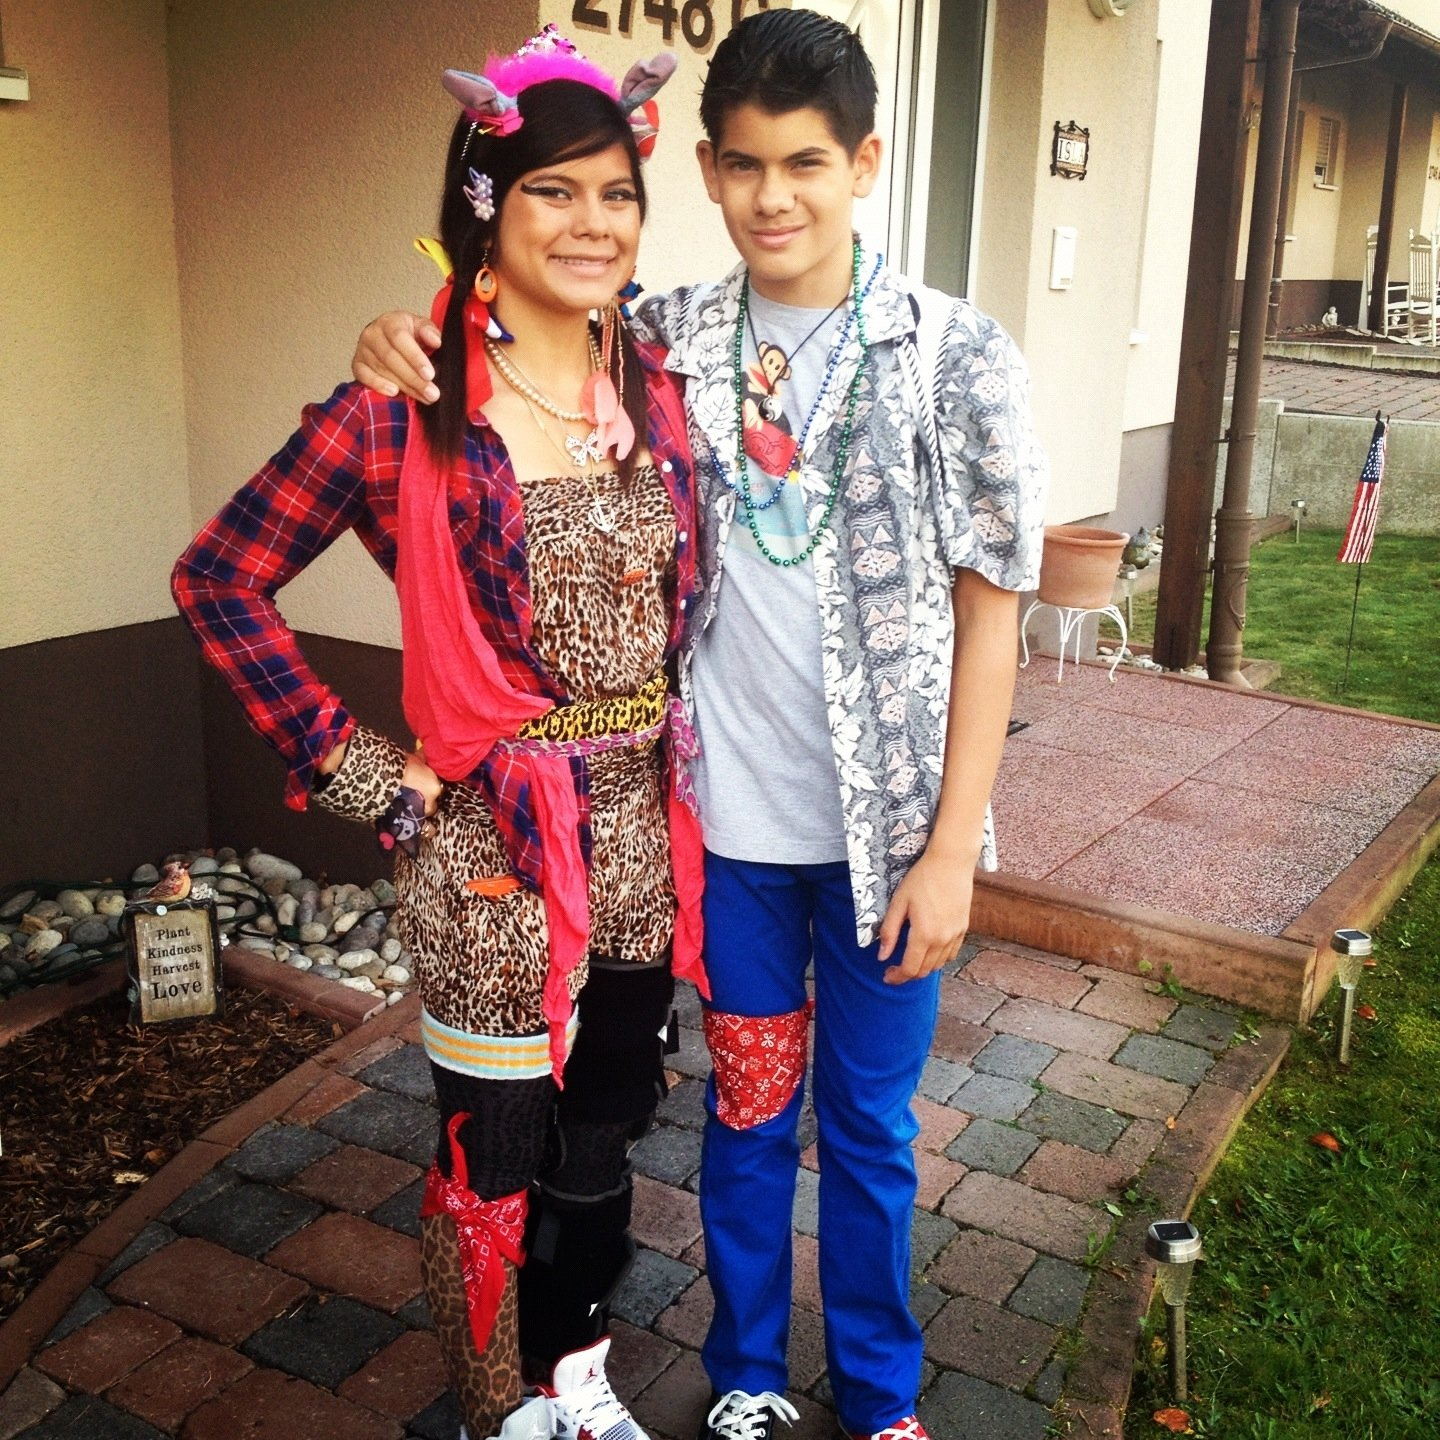 10 Attractive Ideas For Wacky Tacky Day birthday spirit week isla fam bam 3 2020